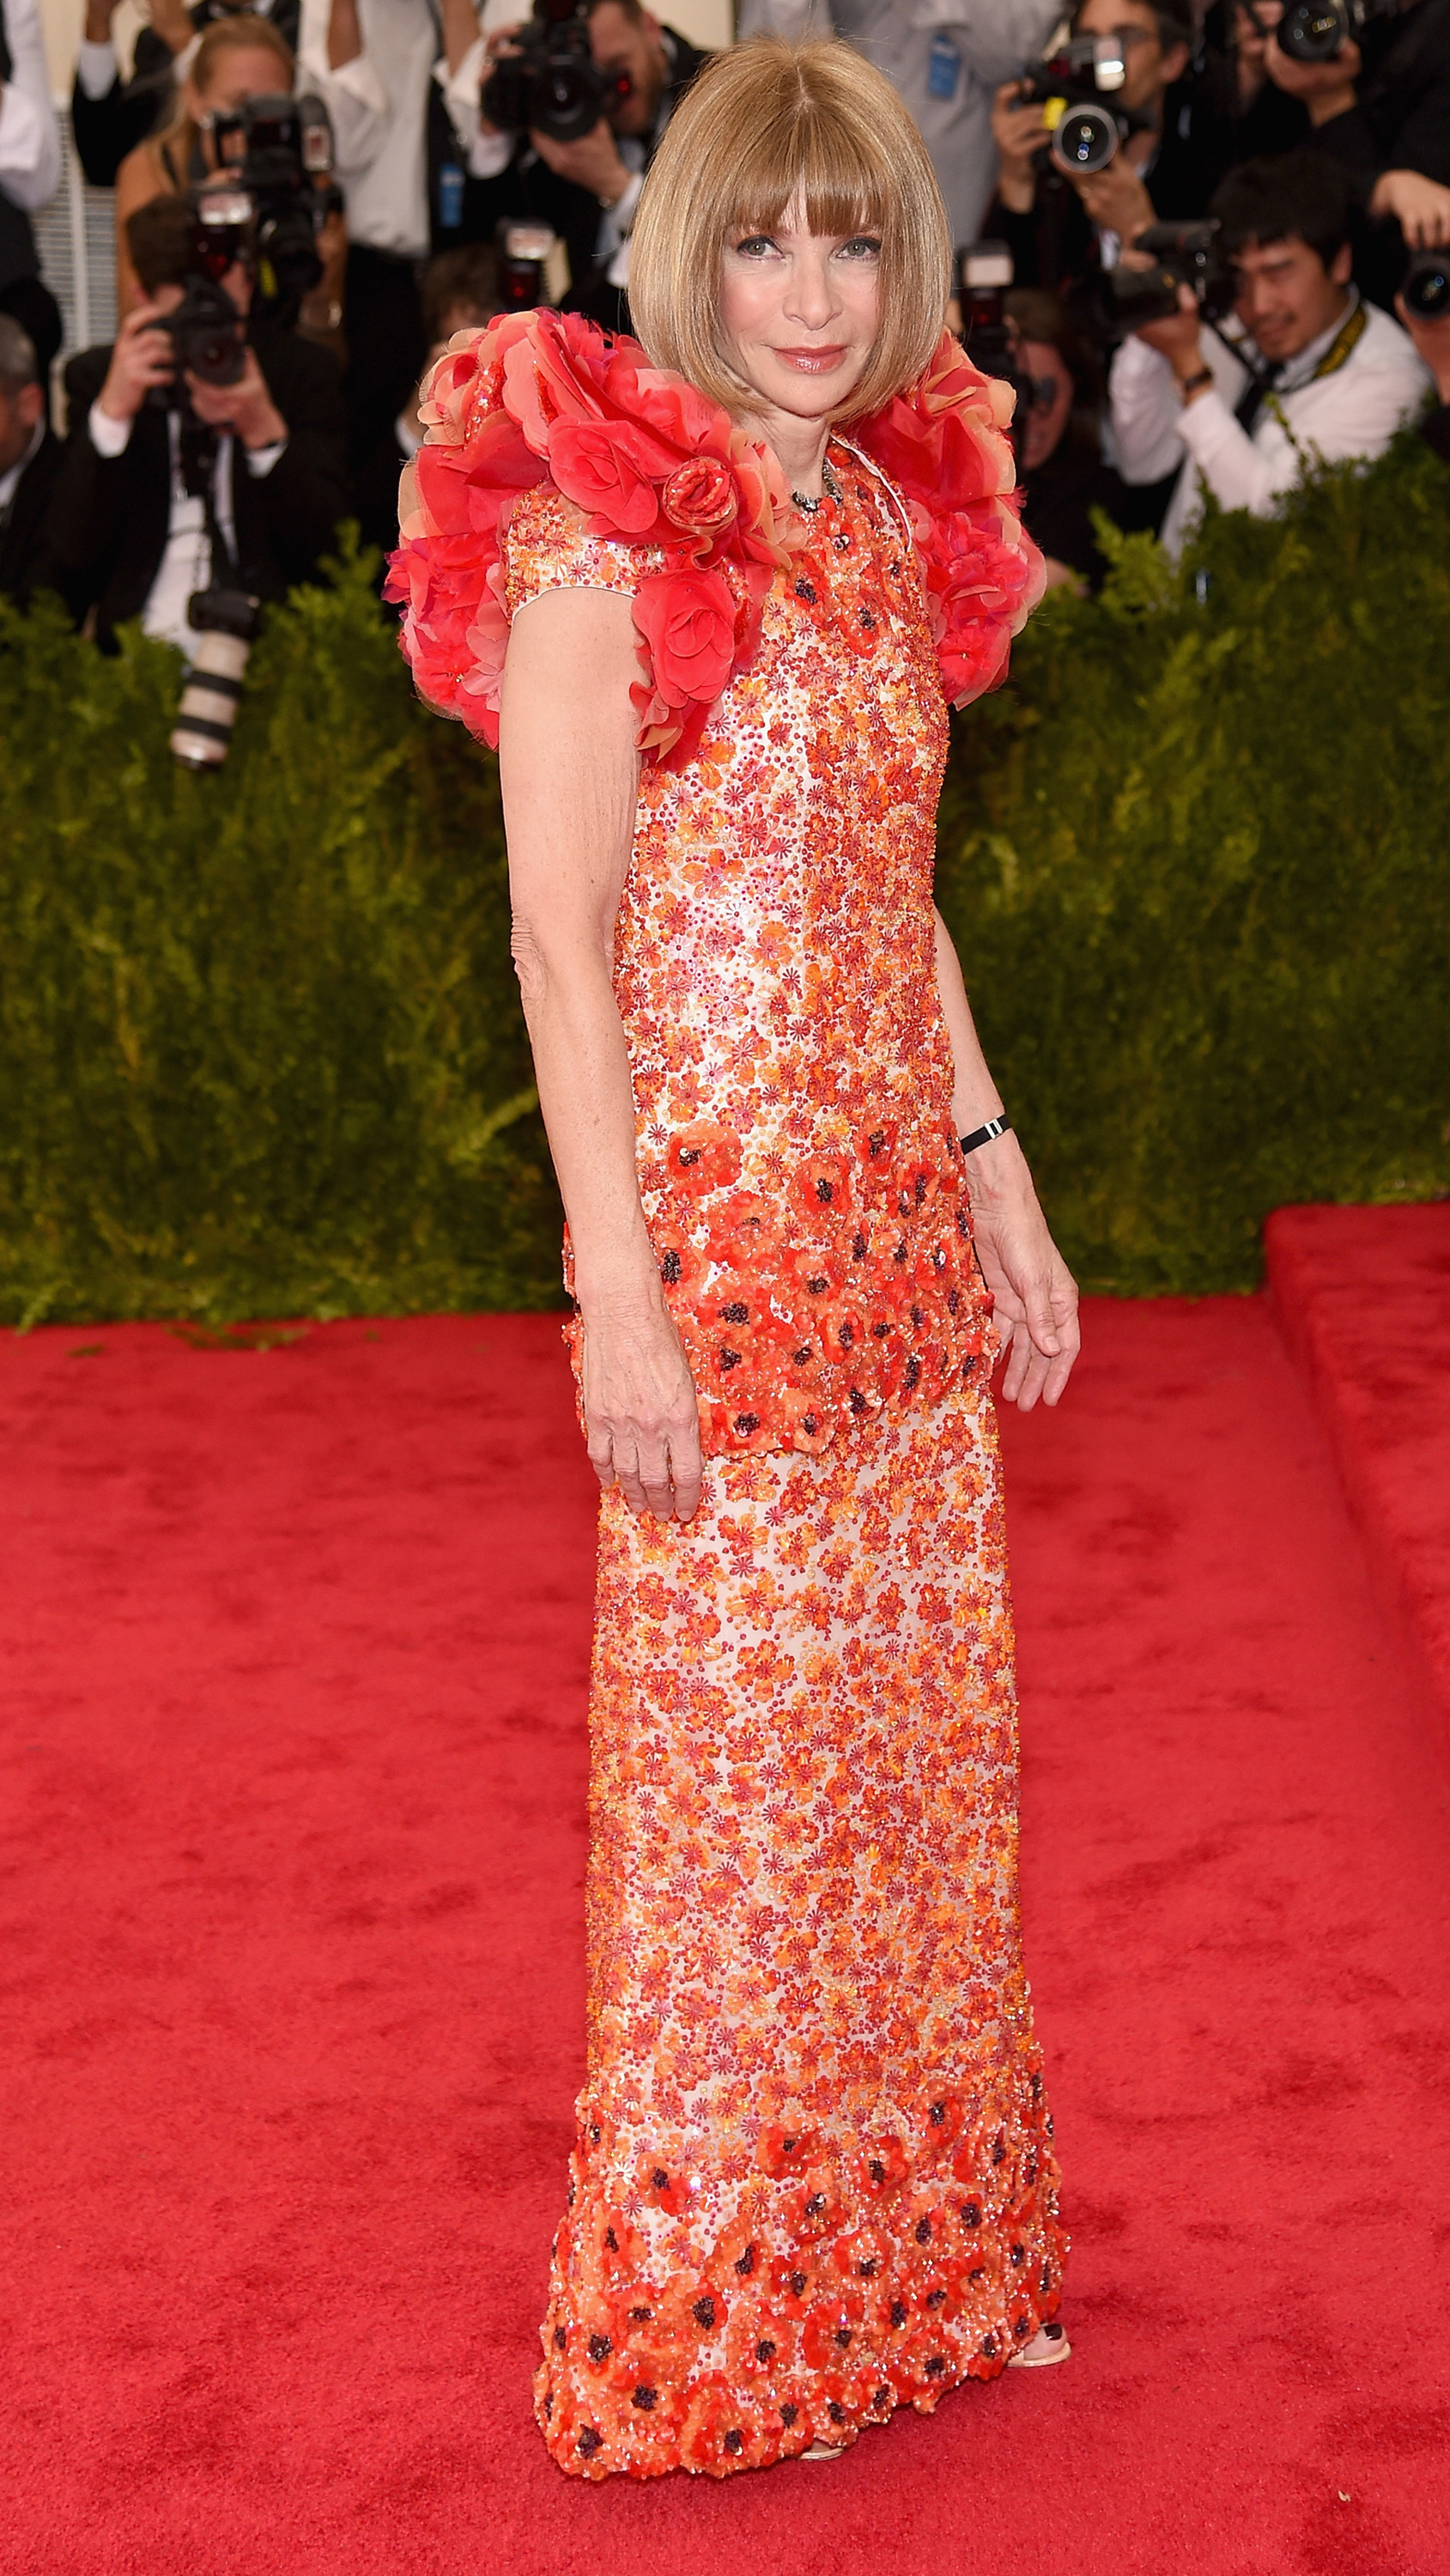 <p>Stars hit the red carpet for the Met Gala, the annual fundraising ball for the Metropolitan Museum of Art's Costume Institute in New York City. Each ball celebrates the theme of that year's Met exhibition, which in 2015 is 'China: Through the looking glass', an exploration of the influence of Chinese imagery in art, film and fashion. </p>